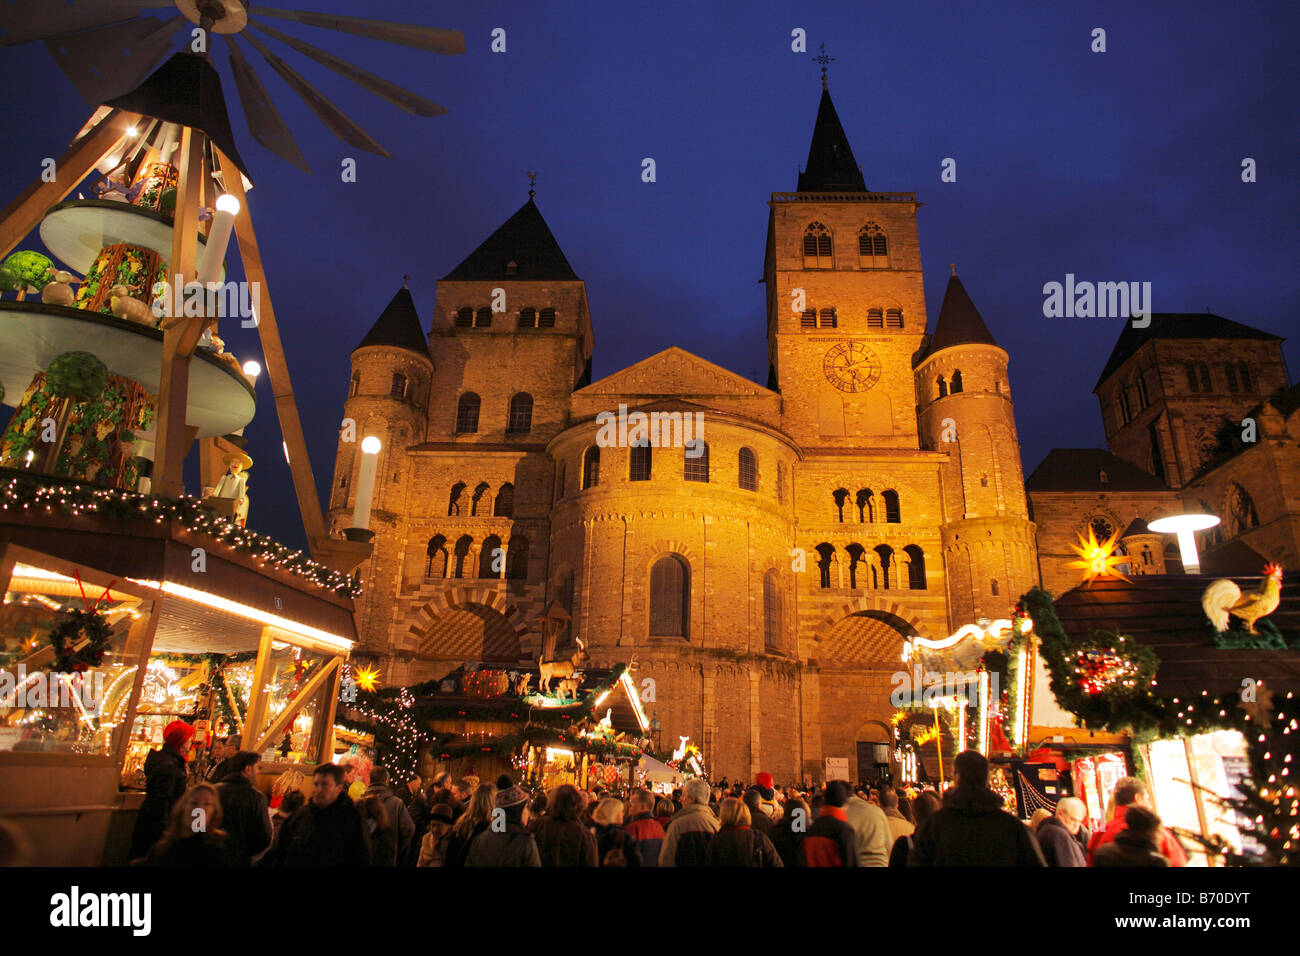 trier germany dusk christmas stockfotos trier germany. Black Bedroom Furniture Sets. Home Design Ideas